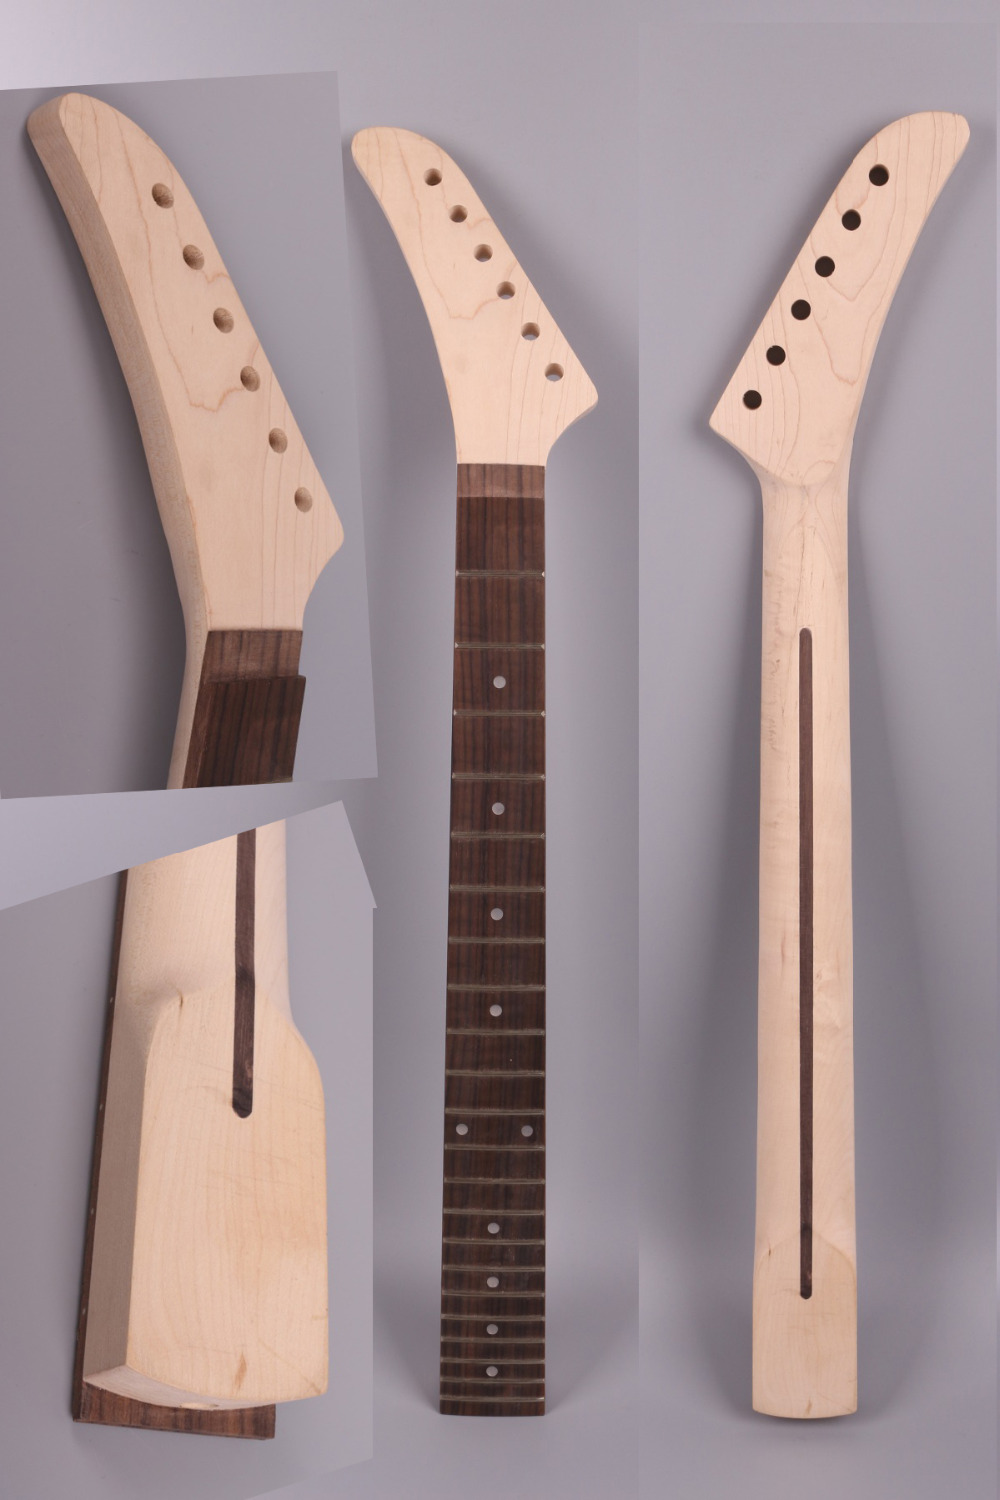 electric guitar neck 25.5 inch 22 fret maple banana headstock rosewood fingerboard Left hand one tl electric guitar neck 25 5 inch 22 fret maple made and rosewood fingerboard bindding also have 21 fret page 2